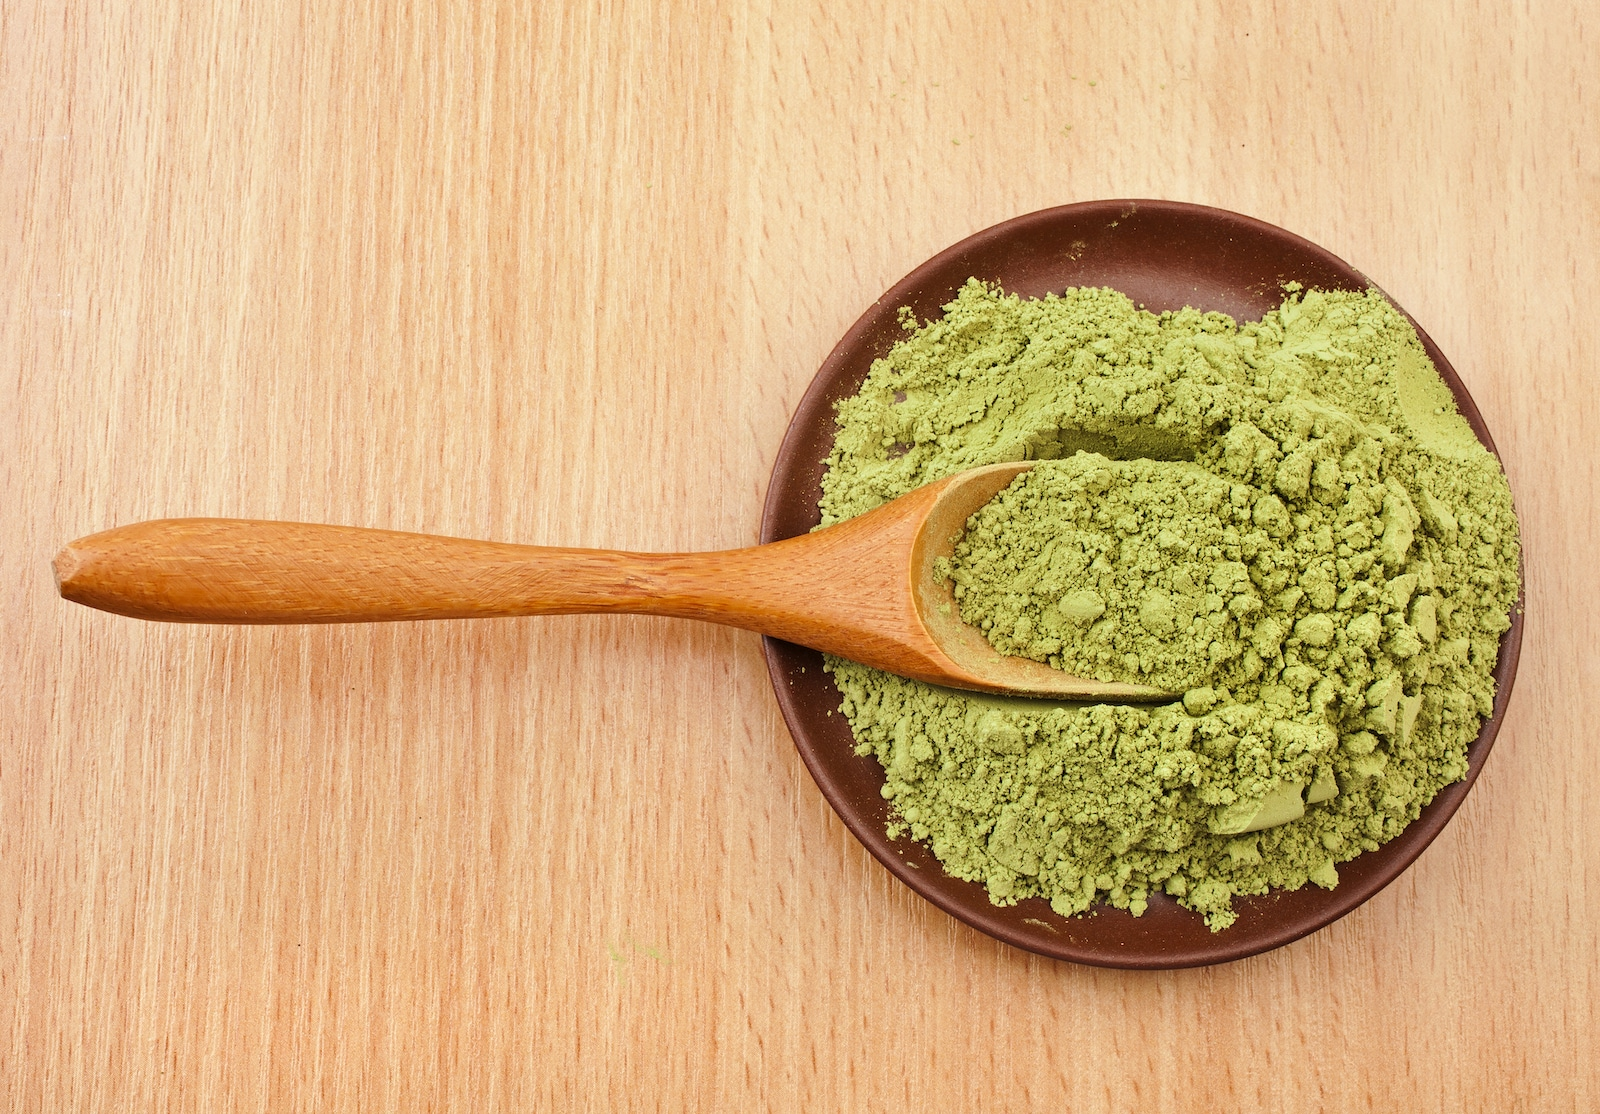 What's A Good Matcha Powder Substitute?